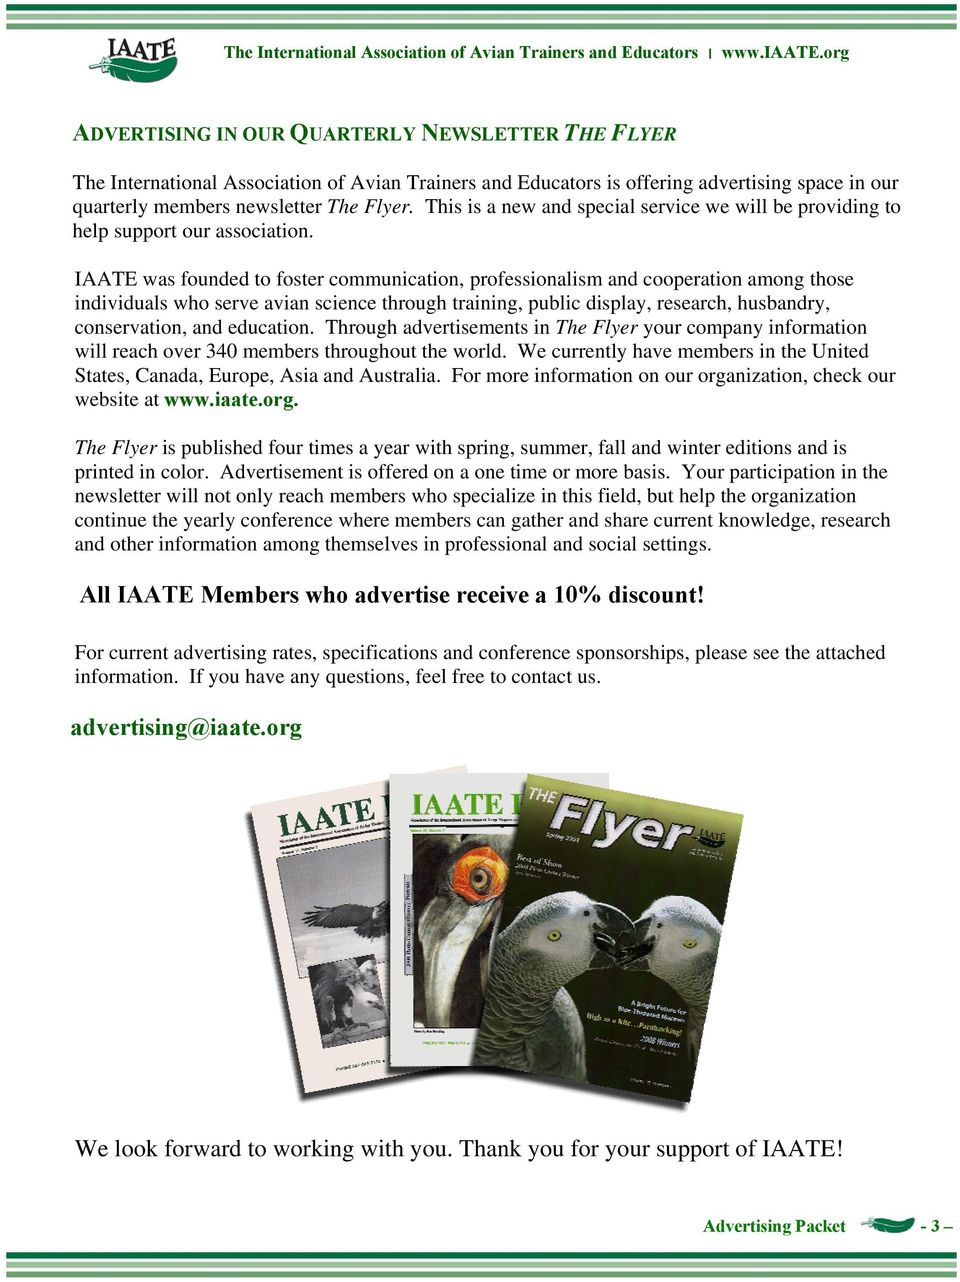 IAATE was founded to foster communication, professionalism and cooperation among those individuals who serve avian science through training, public display, research, husbandry, conservation, and